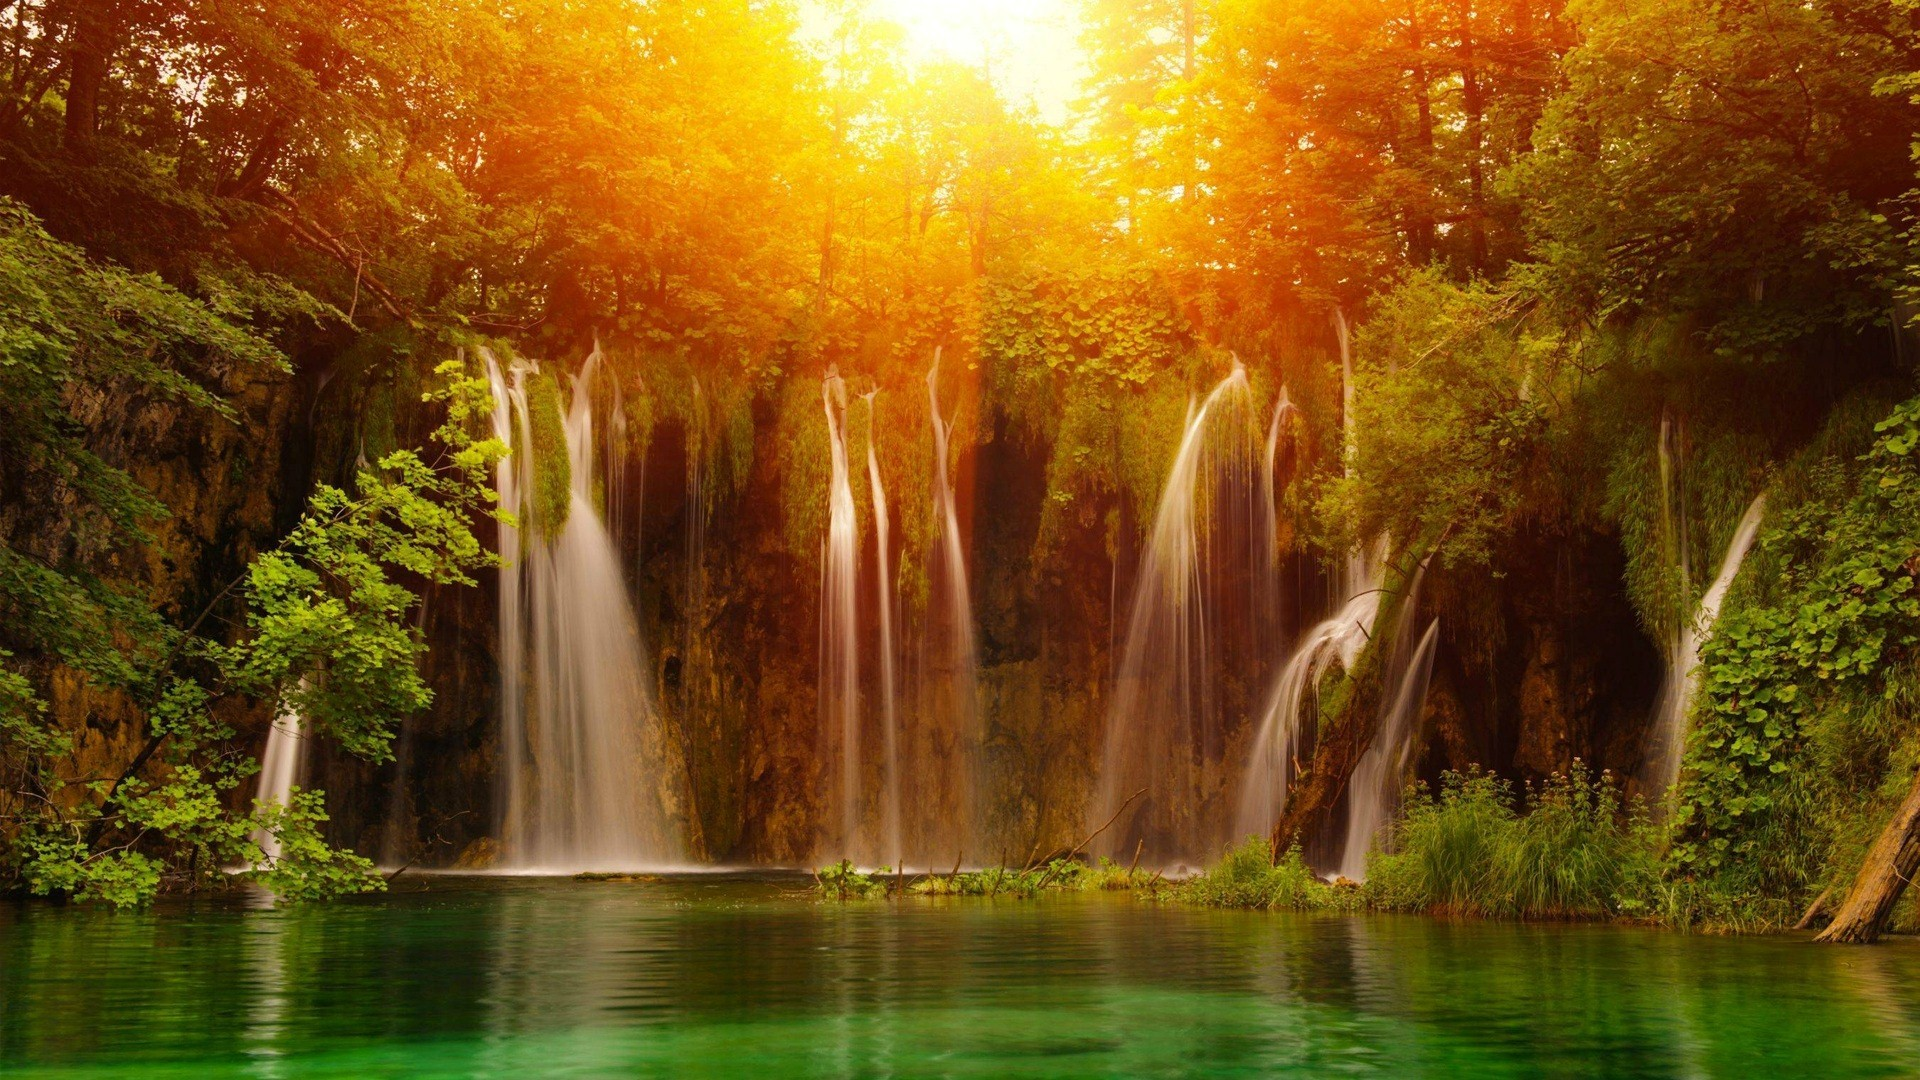 Free Beautiful Desktop Wallpapers For The Fall Waterfall Backgrounds 62 Images